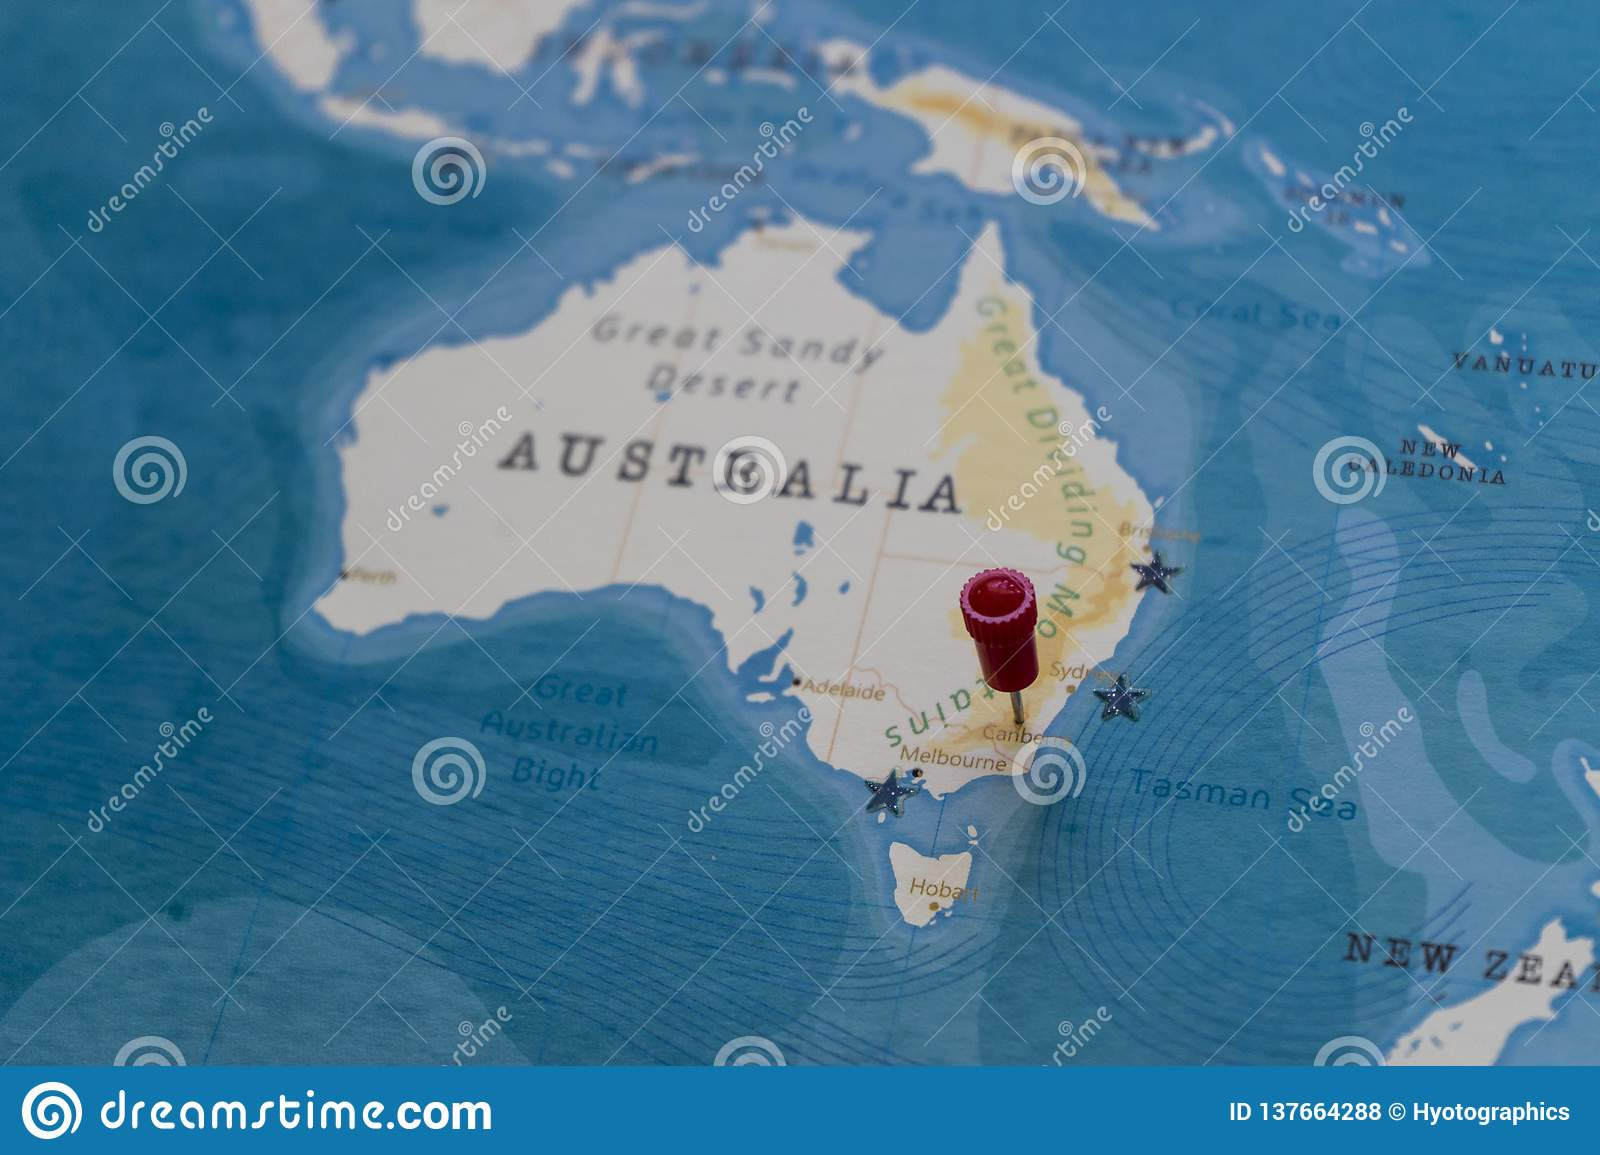 A Pin On Canberra Australia In The World Map Stock Photo Image Of